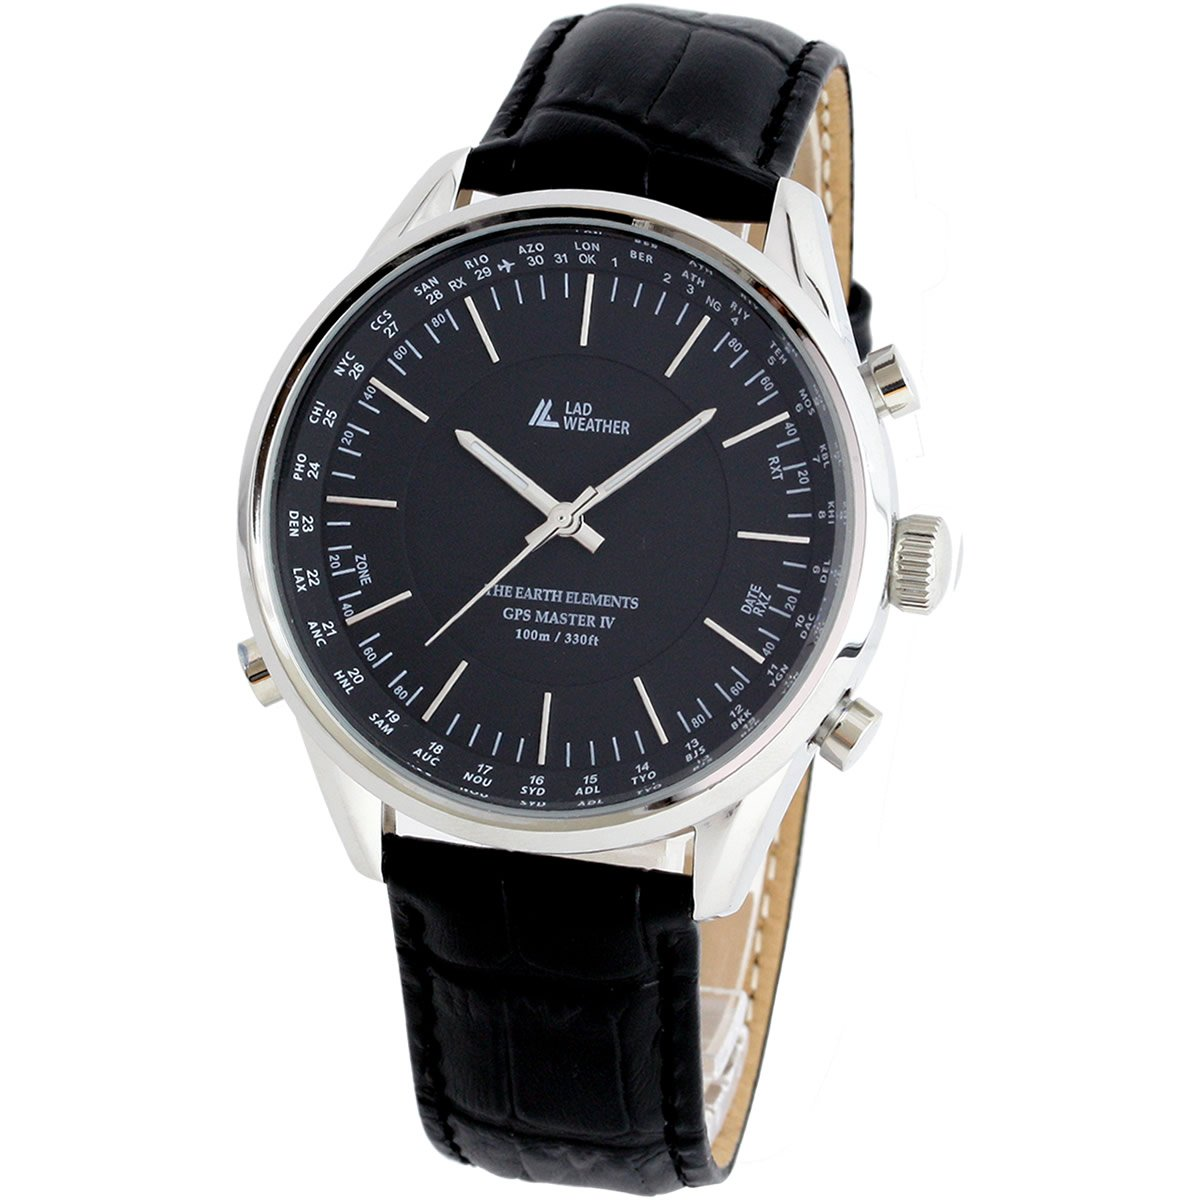 [LAD WEATHER] GPS satellite wave watch business simple watches for men smarter smartwatch